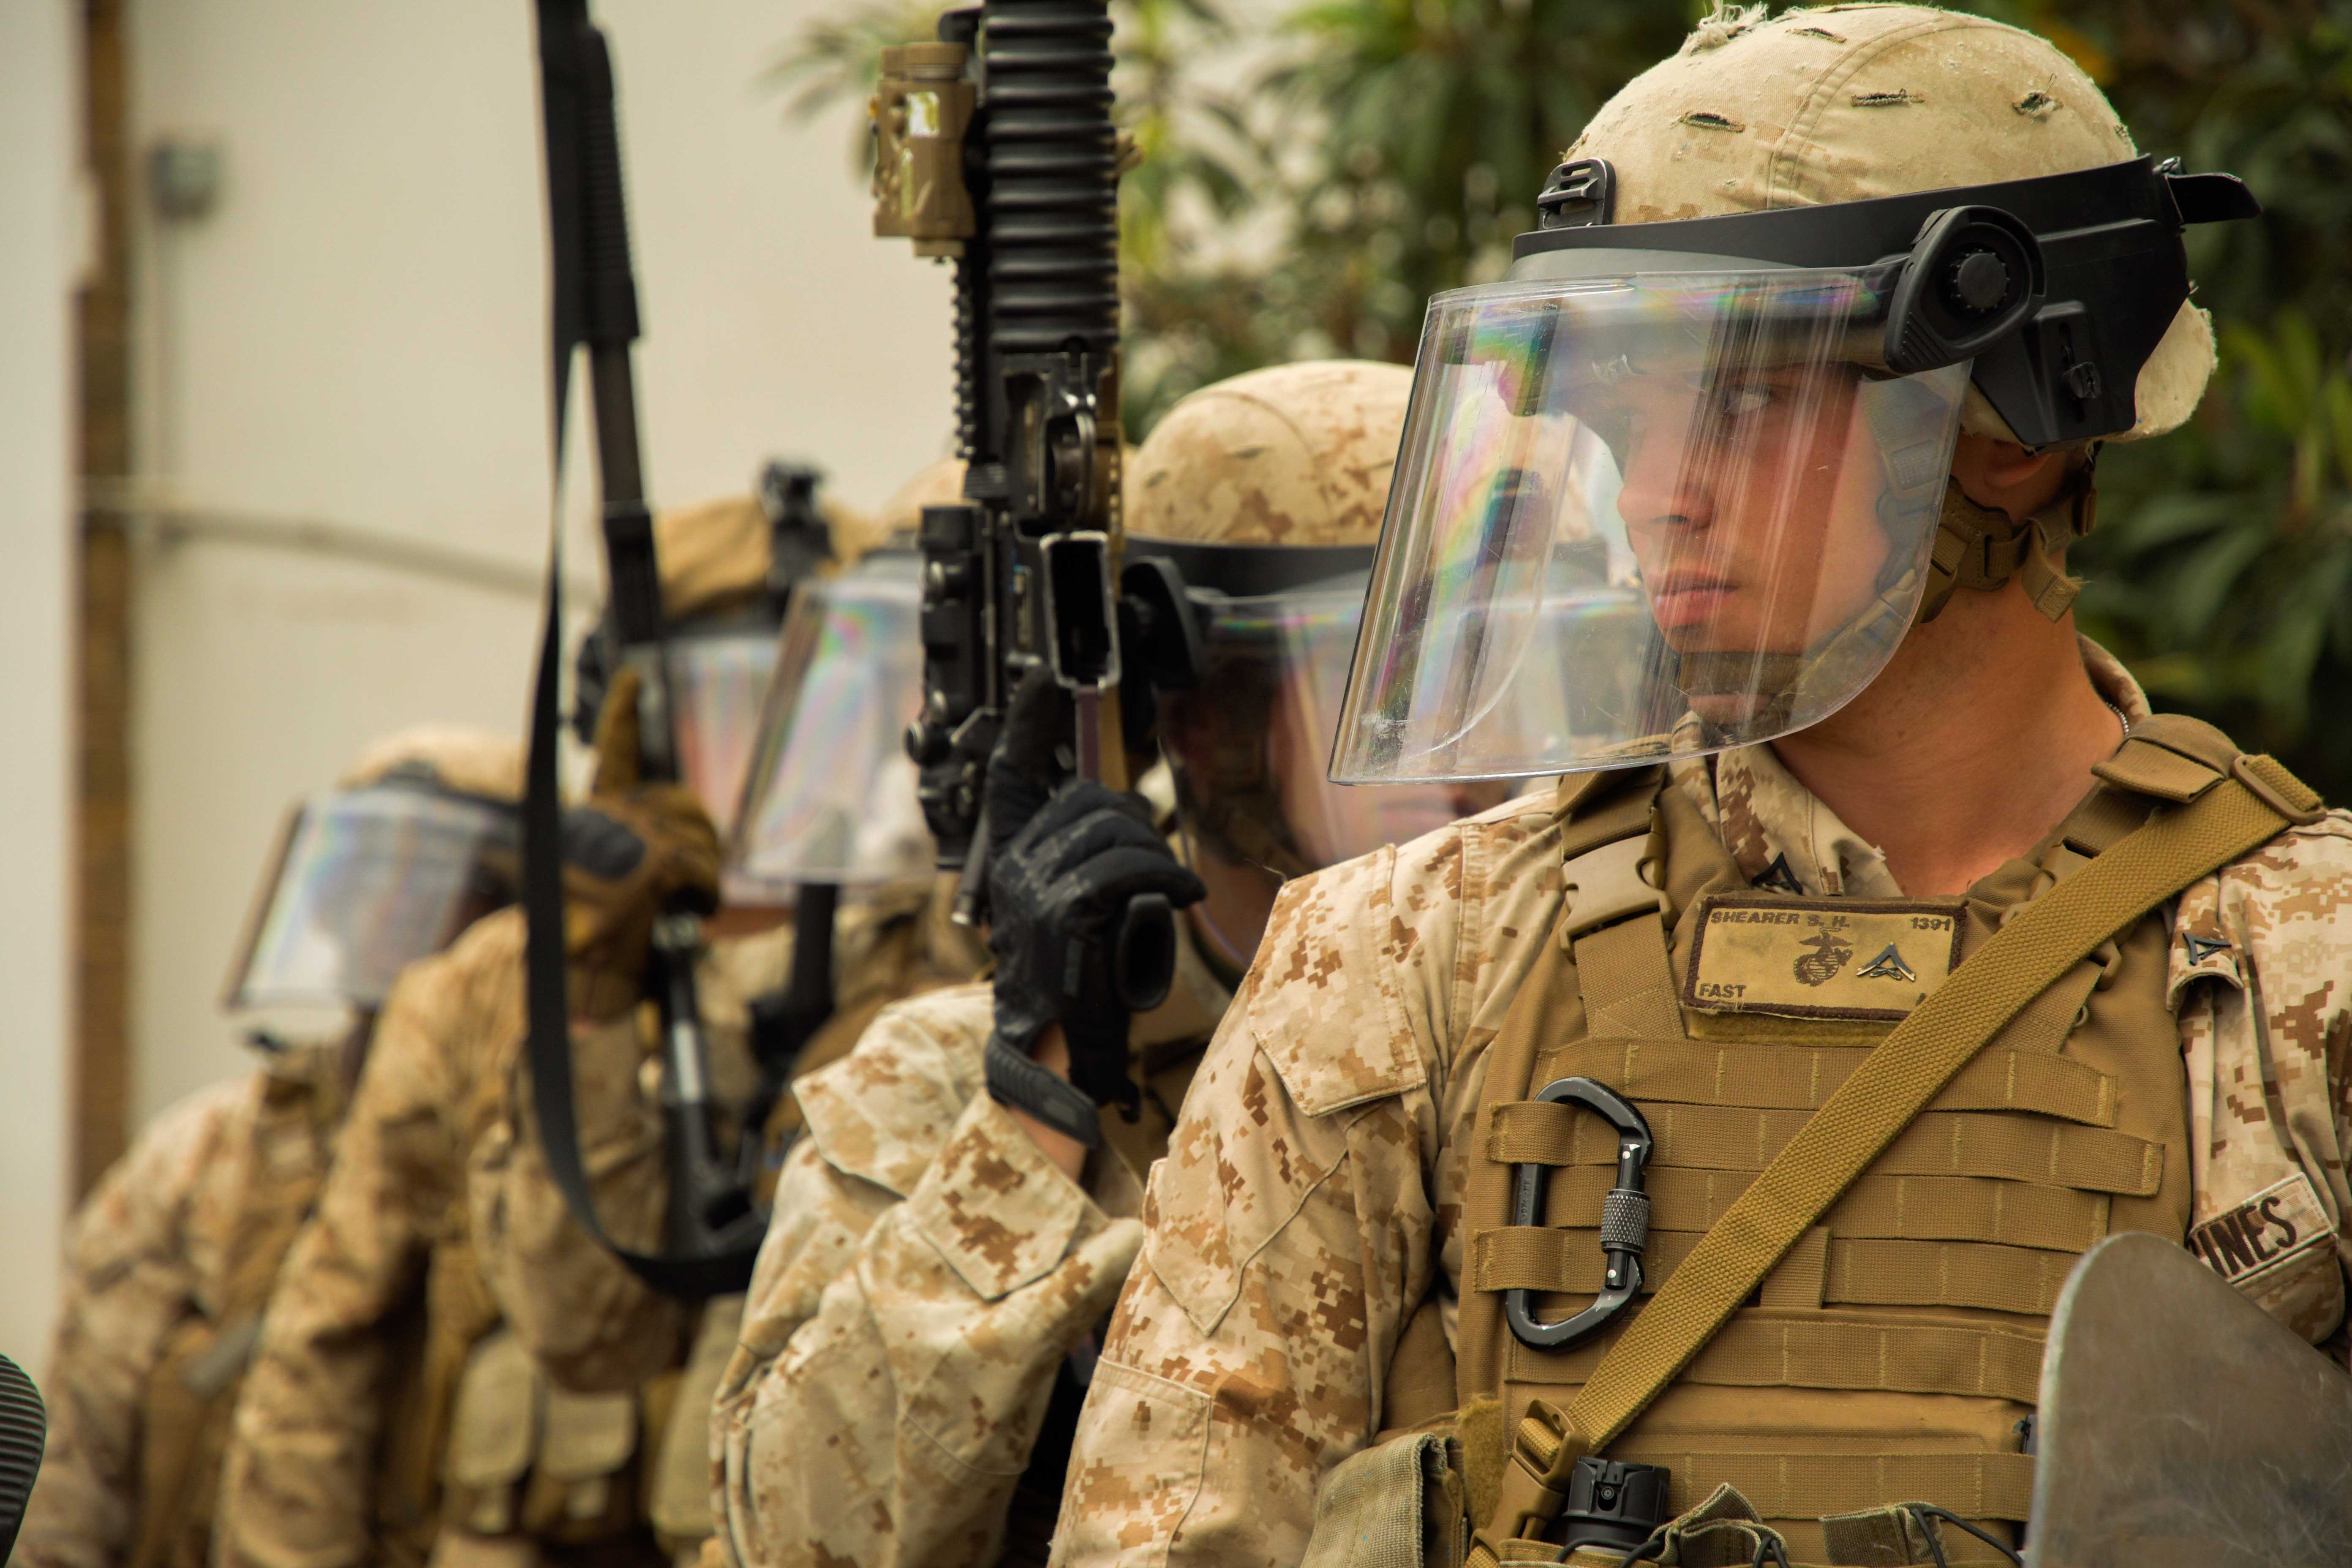 170525-N-UJ417-060 RABAT, Morocco (May 25, 2017) Marine Lance Corporal Samuel Shearer, second team leader, first squad in Alpha Company 1st Platoon Fleet Anti-terrorism Security Team, Company Europe  (FASTEUR), forms up a column of Marines during a Non-Lethal Combatant techniques demonstration for Moroccan police in Rabat, Morocco. FASTEUR was in Rabat training with Moroccan Police during the first embassy training exercise within AFRICOM to strengthen interoperability with host nation response forces and prepare a coordinated response plan for any unforeseen emergency. (U.S. Navy photo by Mass Communication Specialist 2nd Class Russell R. Rhodes Jr./Released)